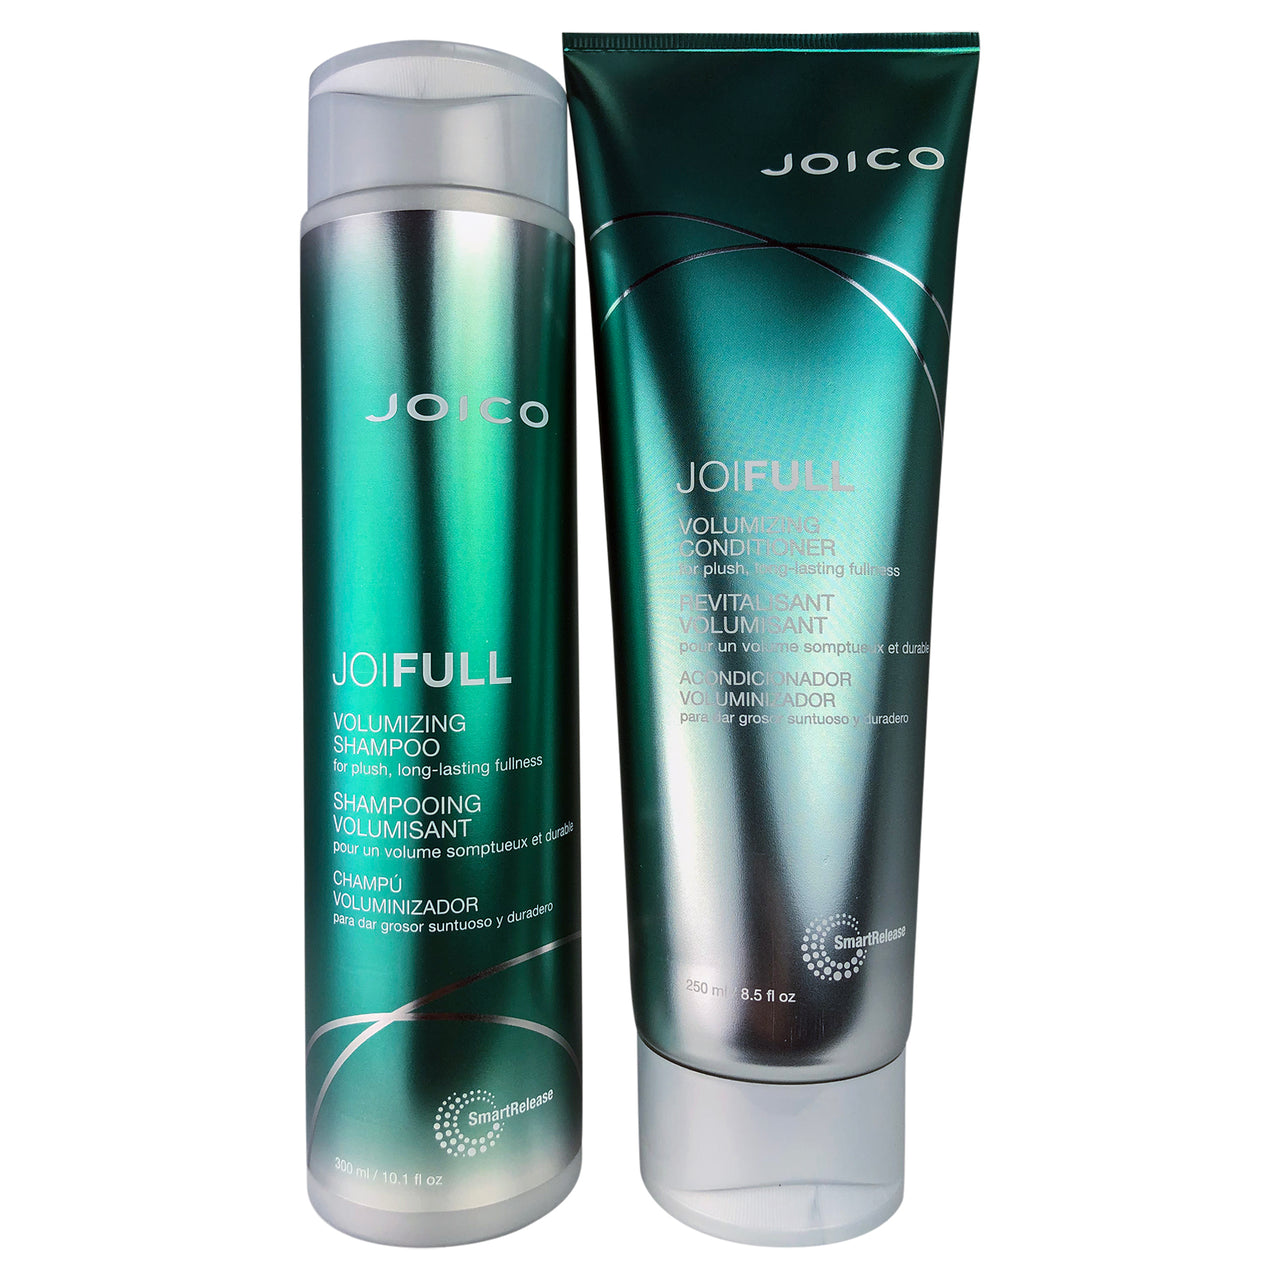 Joico Joifull Volumizing Shampoo & Conditioner DUO 10.1 oz/8.5 oz